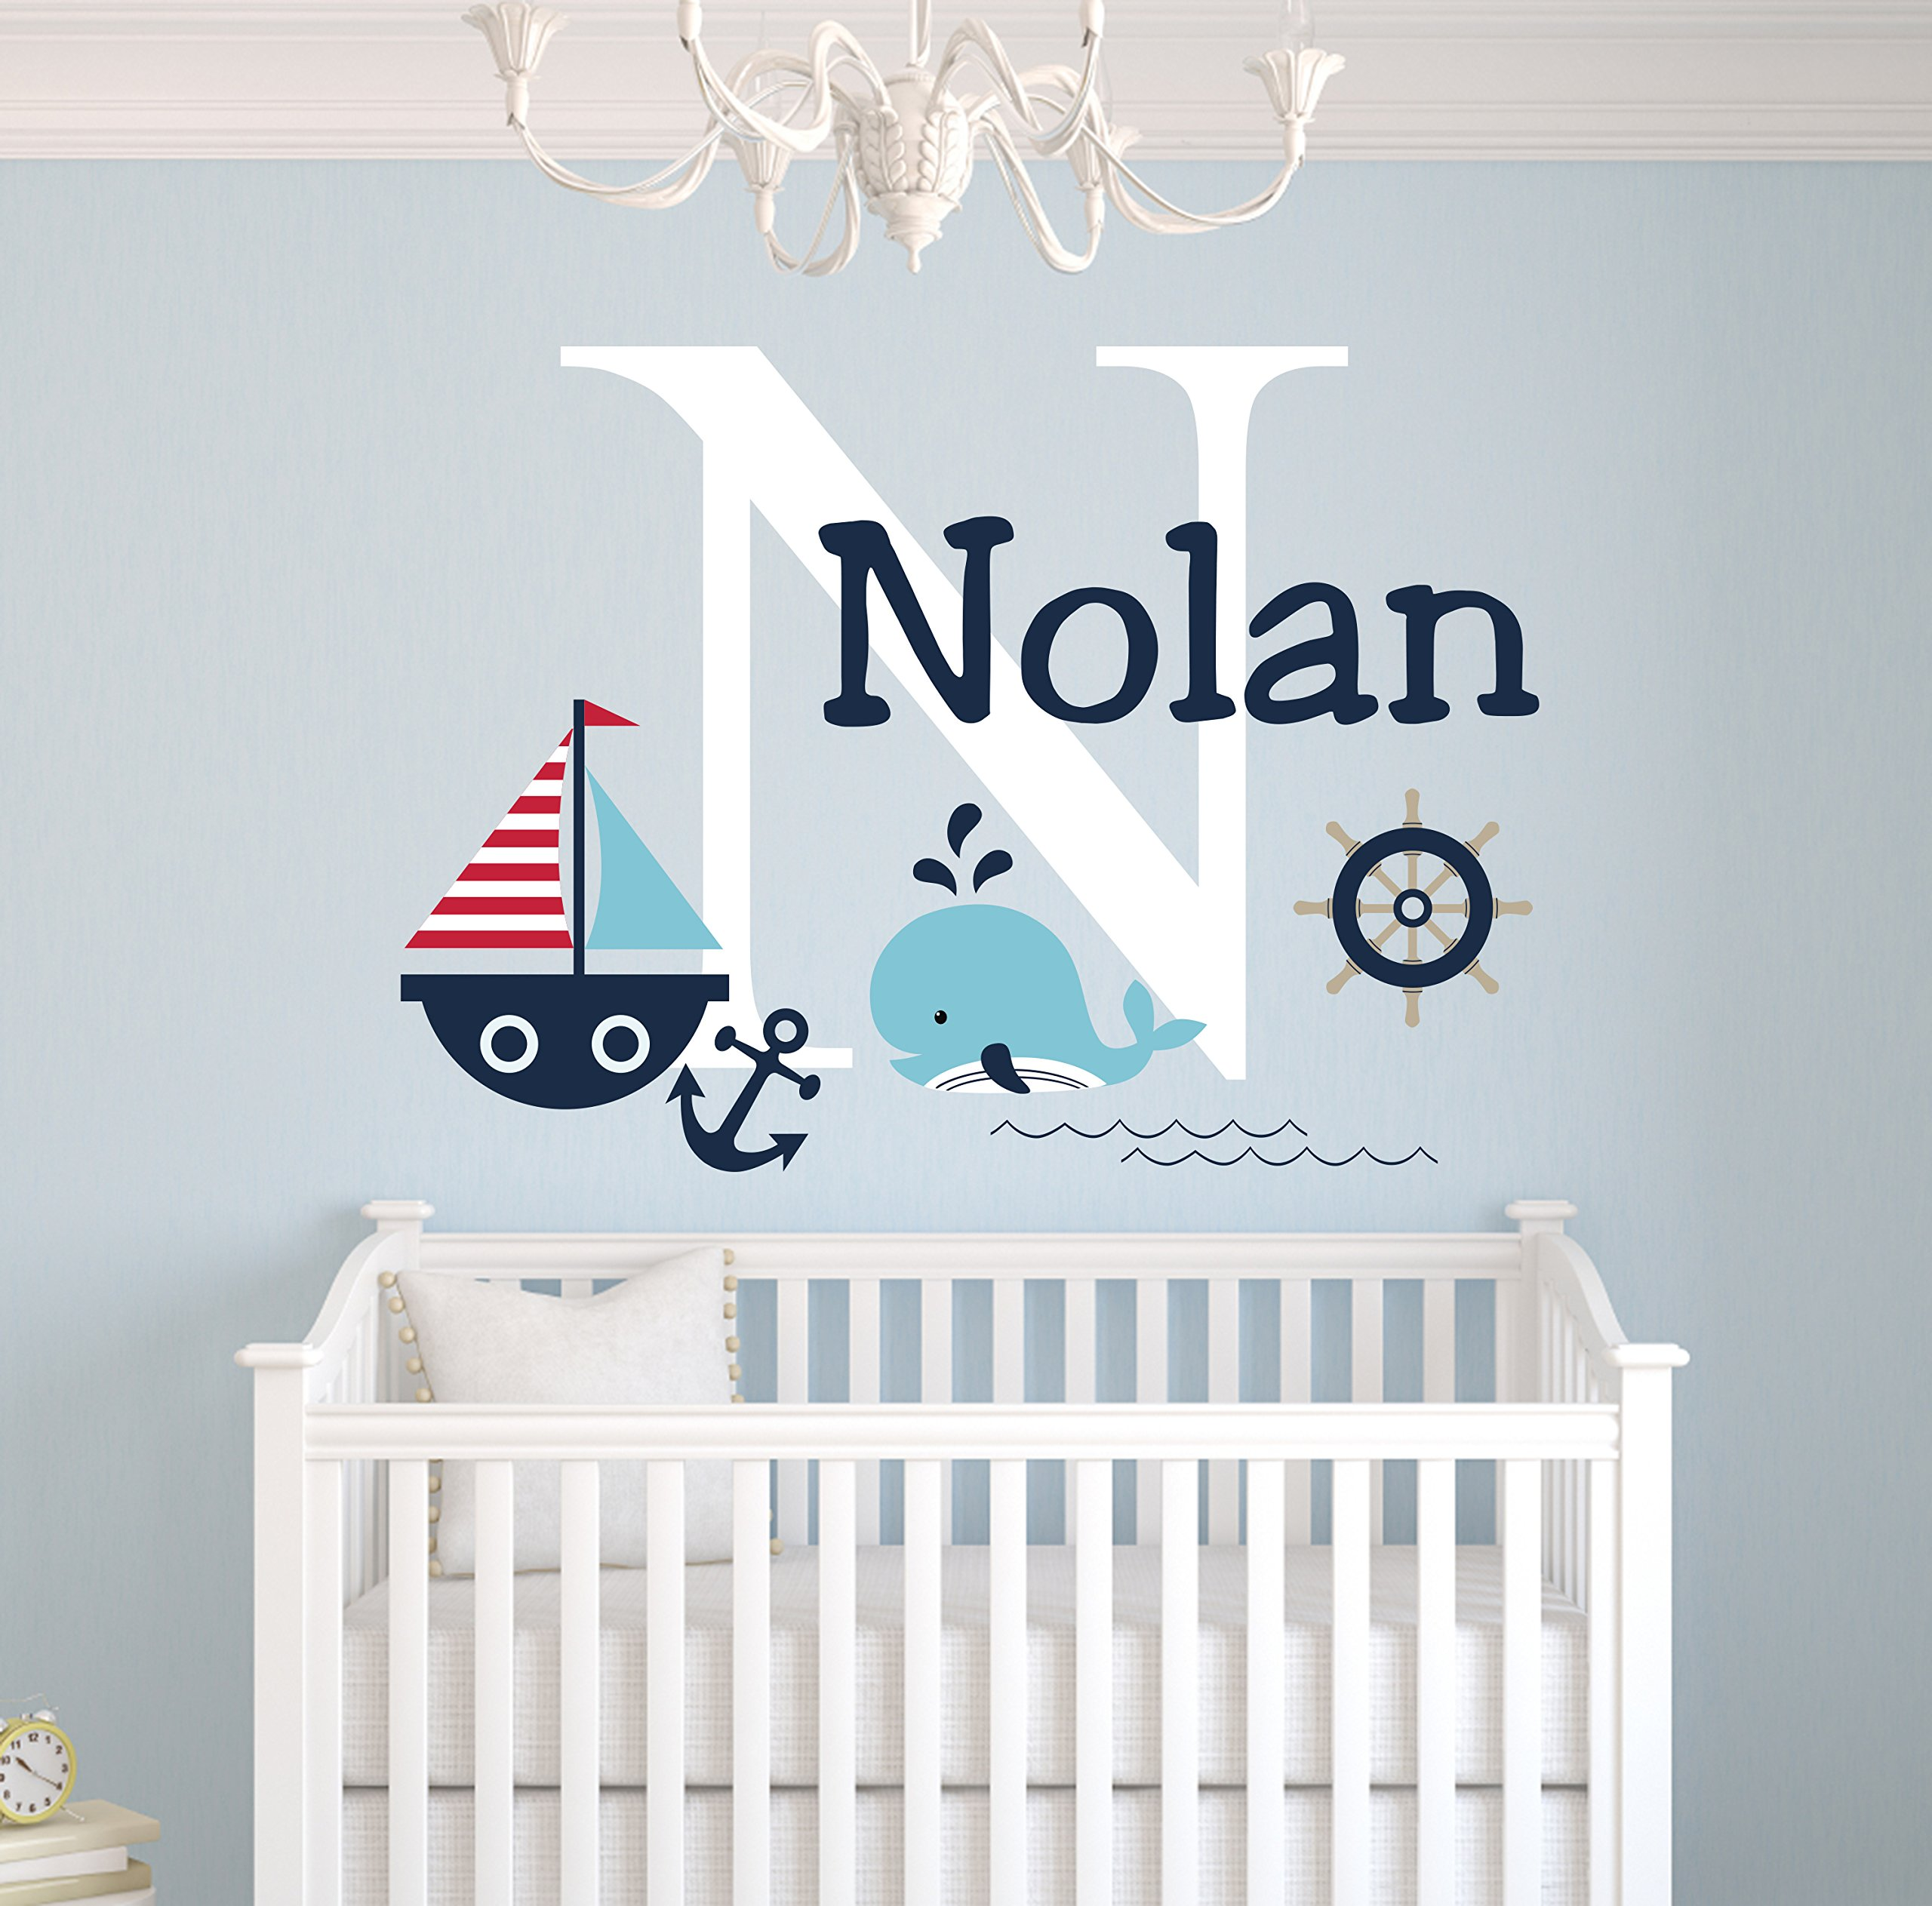 Personalized Nautical Theme Wall Decal - Nautical Decor - Nursery Wall Decals - Whale and Sailboat - Custom Vinyl Baby Nursery Decor by Decalzone Inc